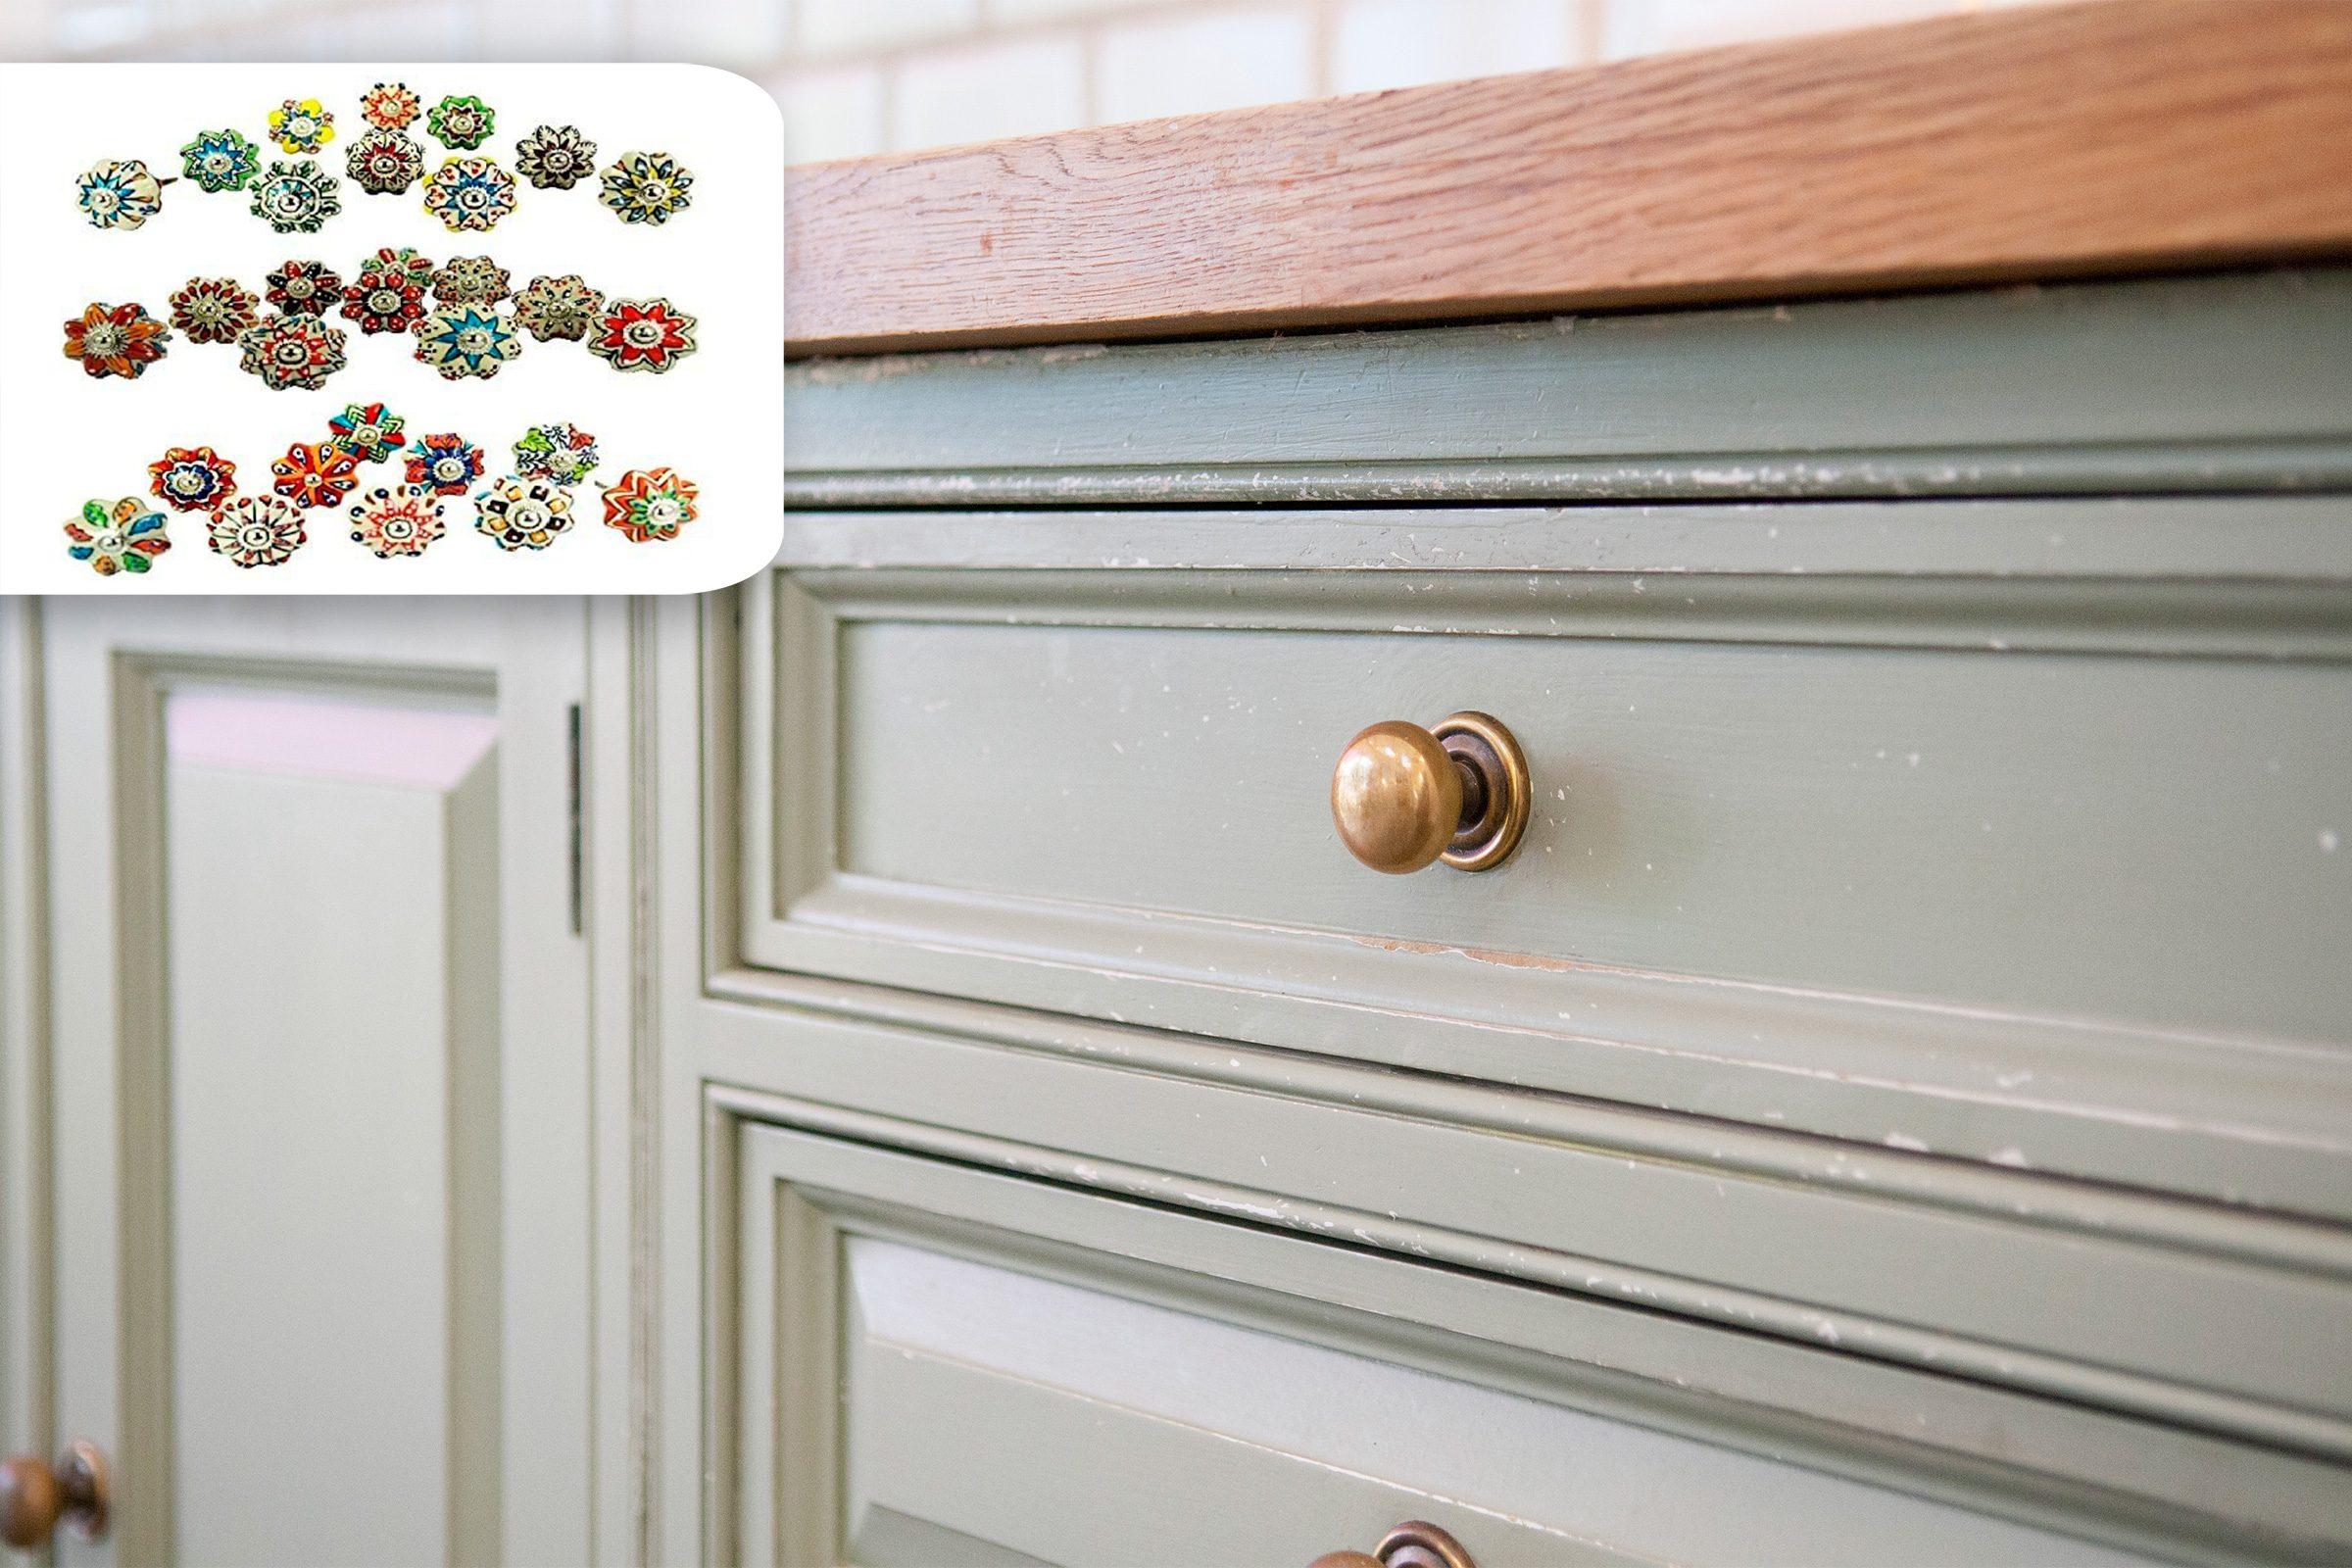 cabinet hardware close up with shopping idea